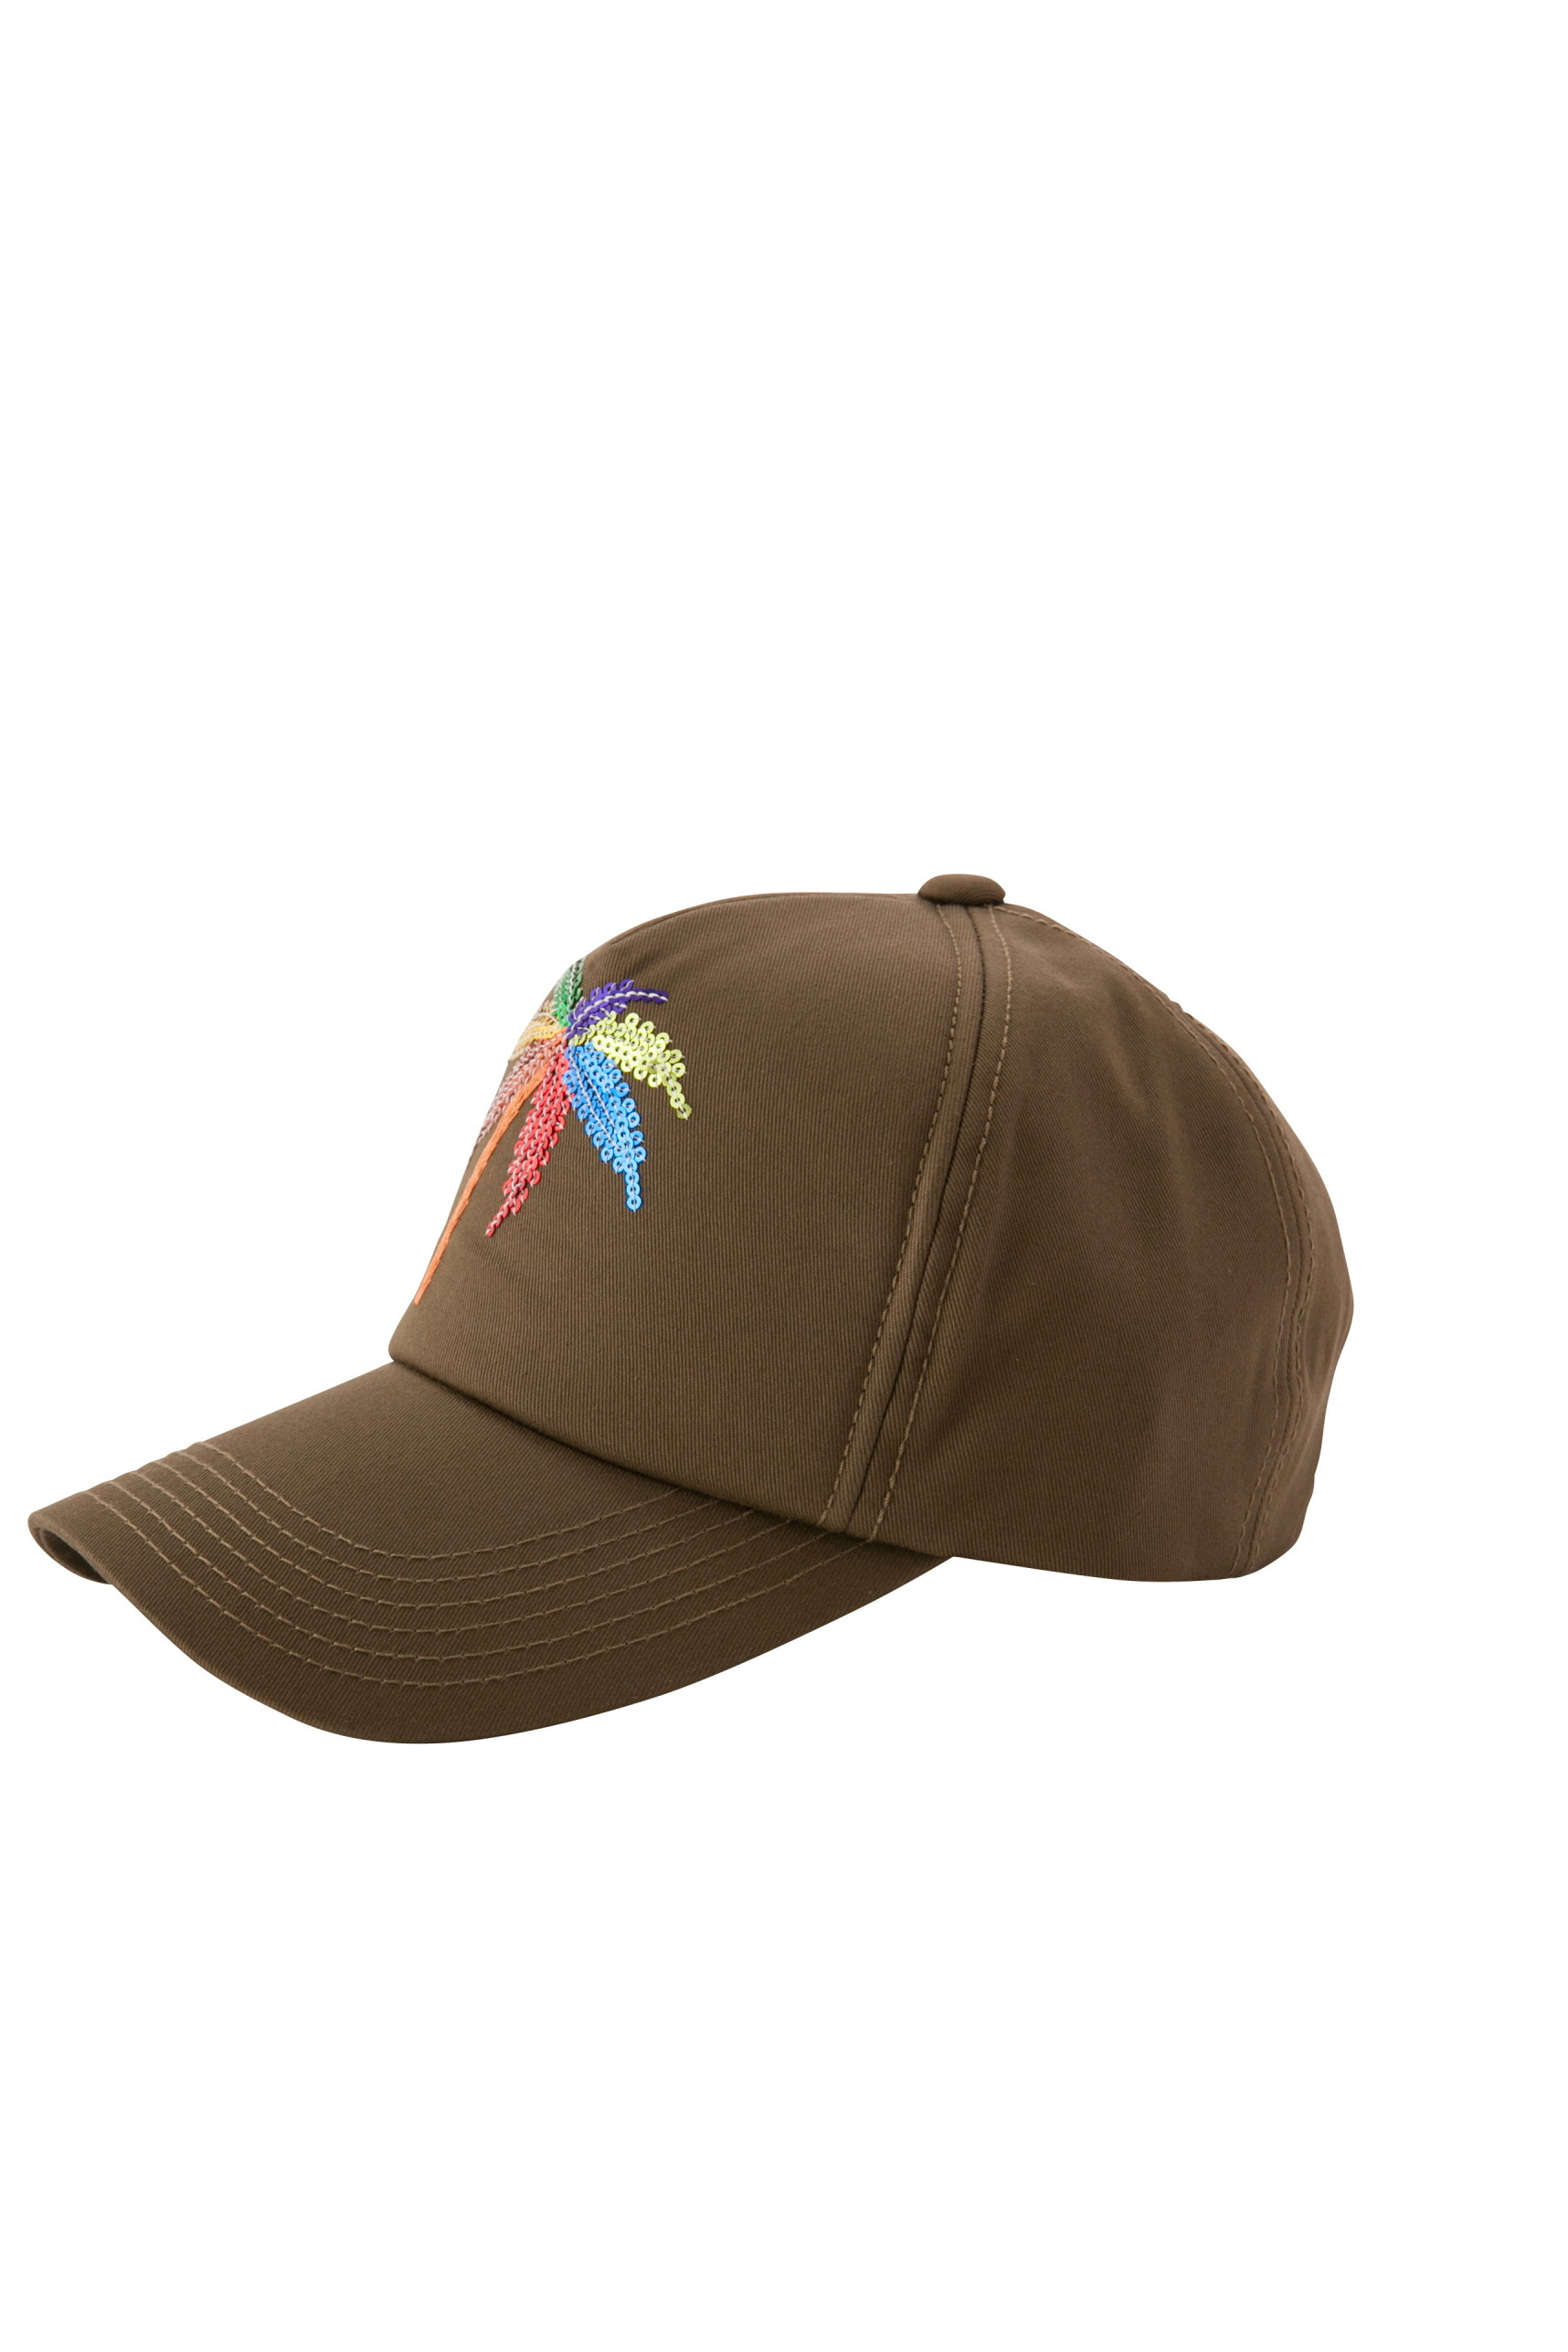 CAP WITH SEQUIN MULTI PALM TREE EMBROIDERY(OLIVE-UNI)